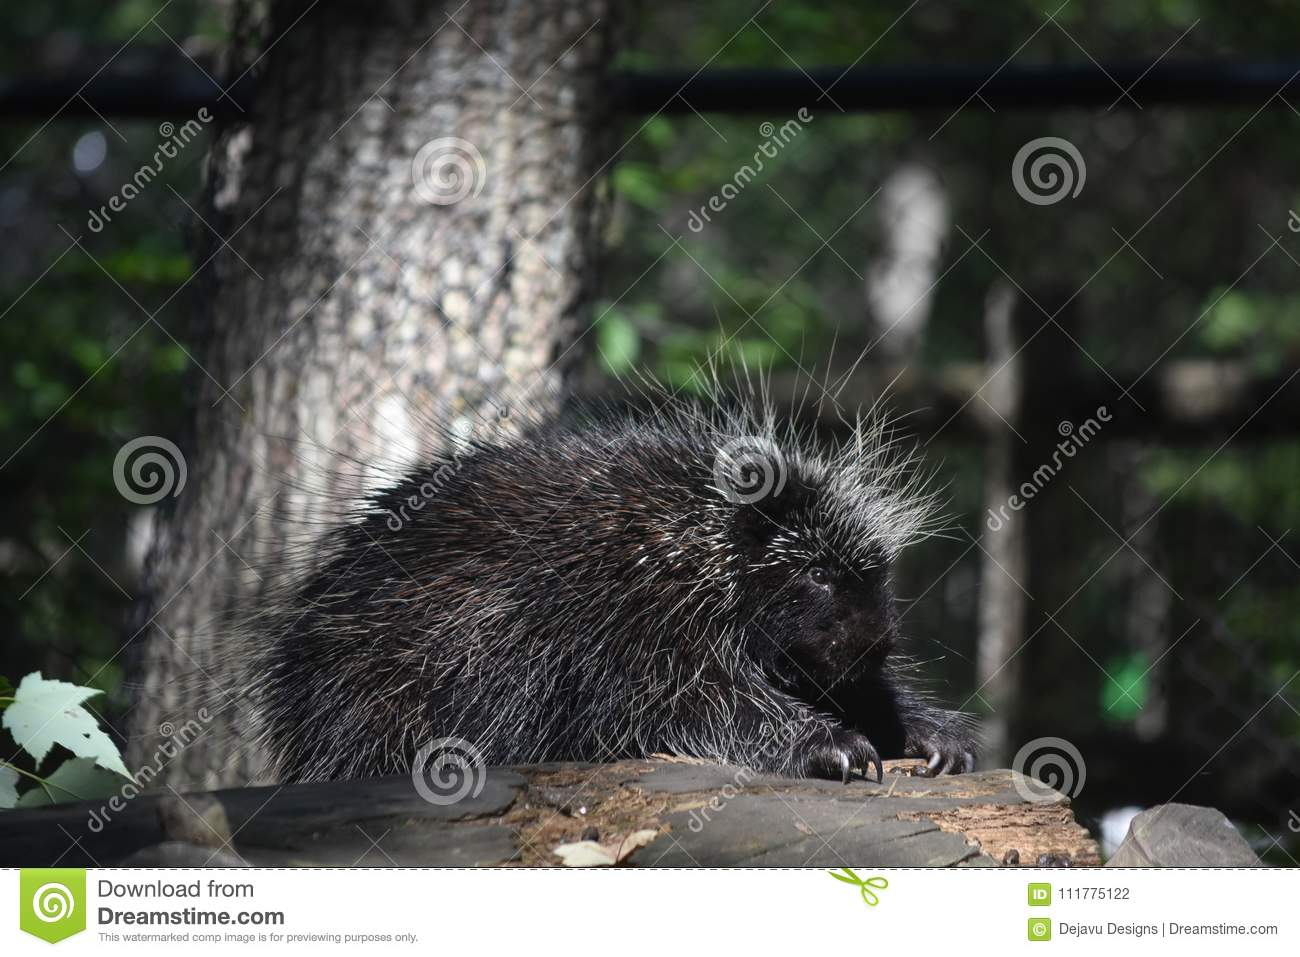 Pretty porcupine with sharp quills cover its body